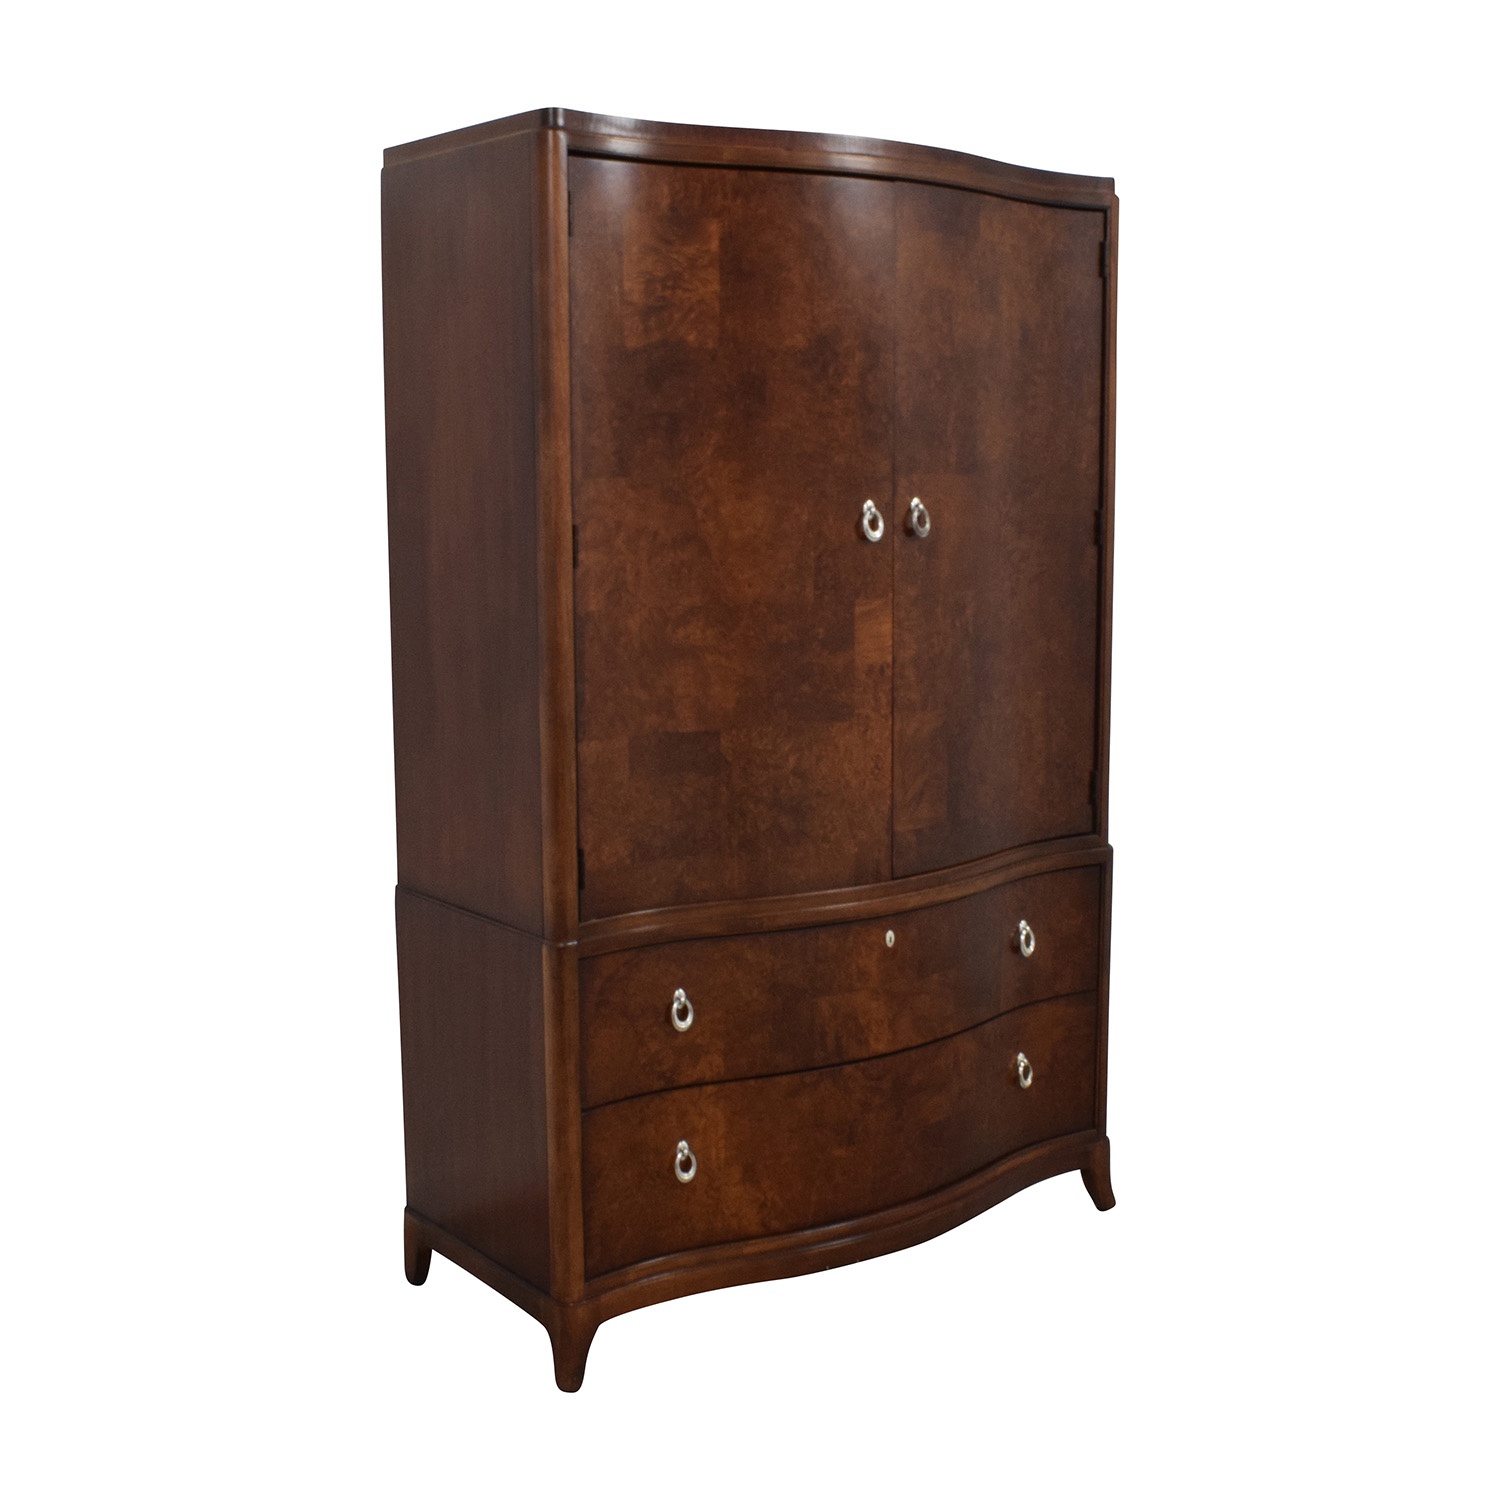 Thomasville Thomasville Bogart Burlwood Armoire coupon